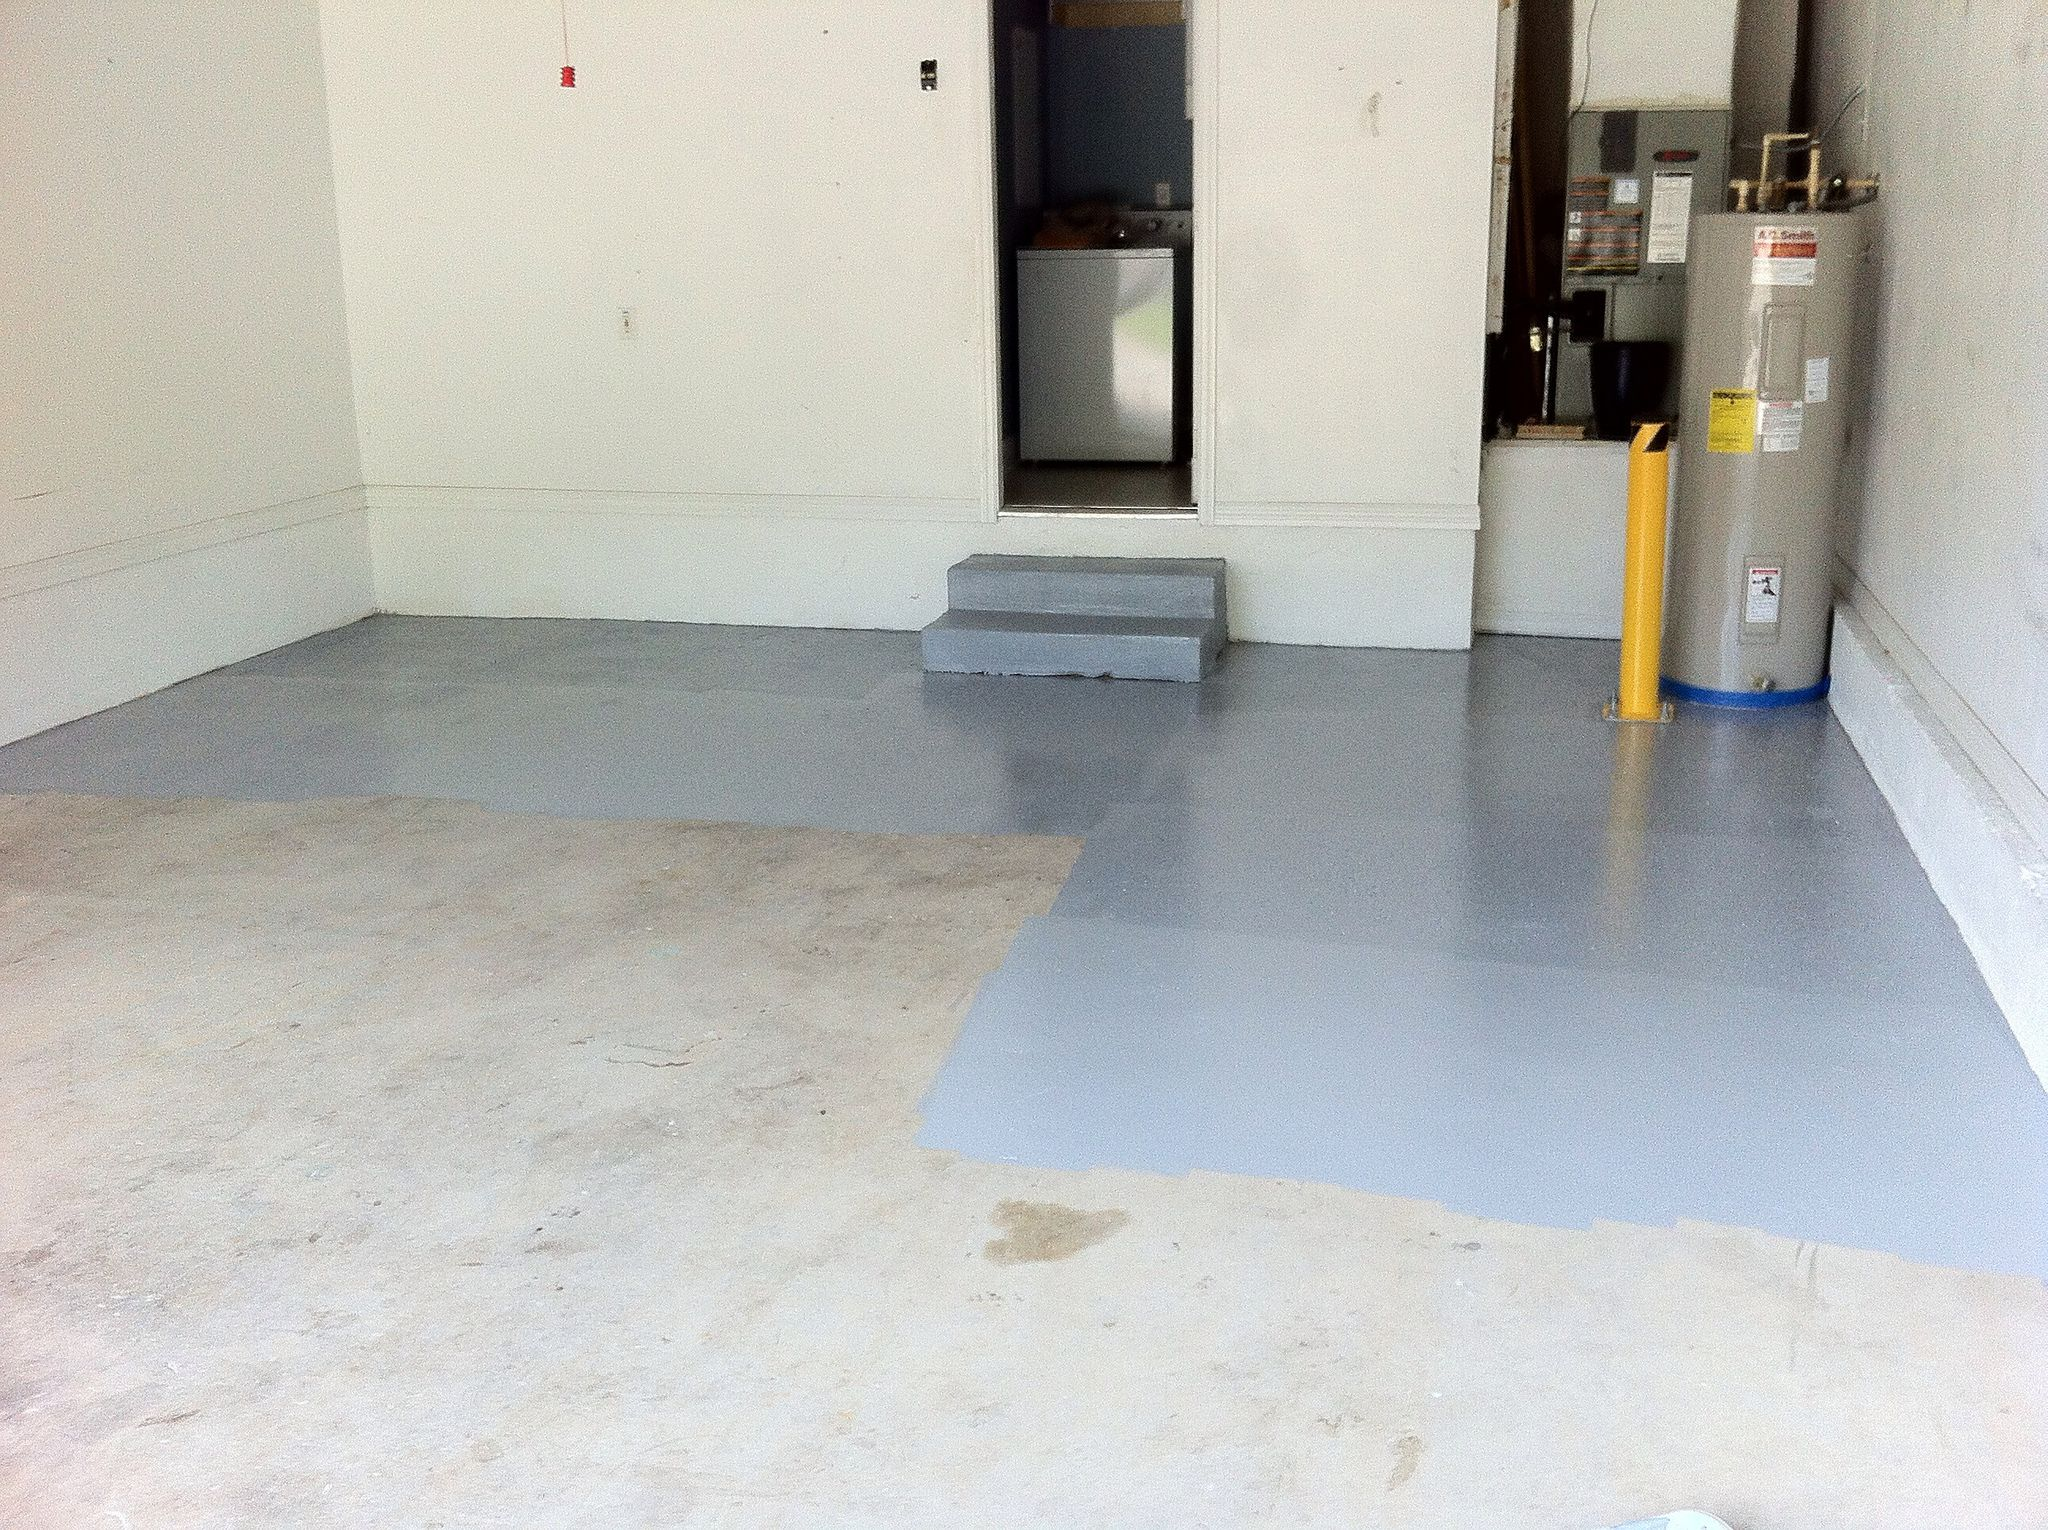 Garage Floor Epoxy Fill Cracks How To Apply Garage Floor Epoxy Like A Pro